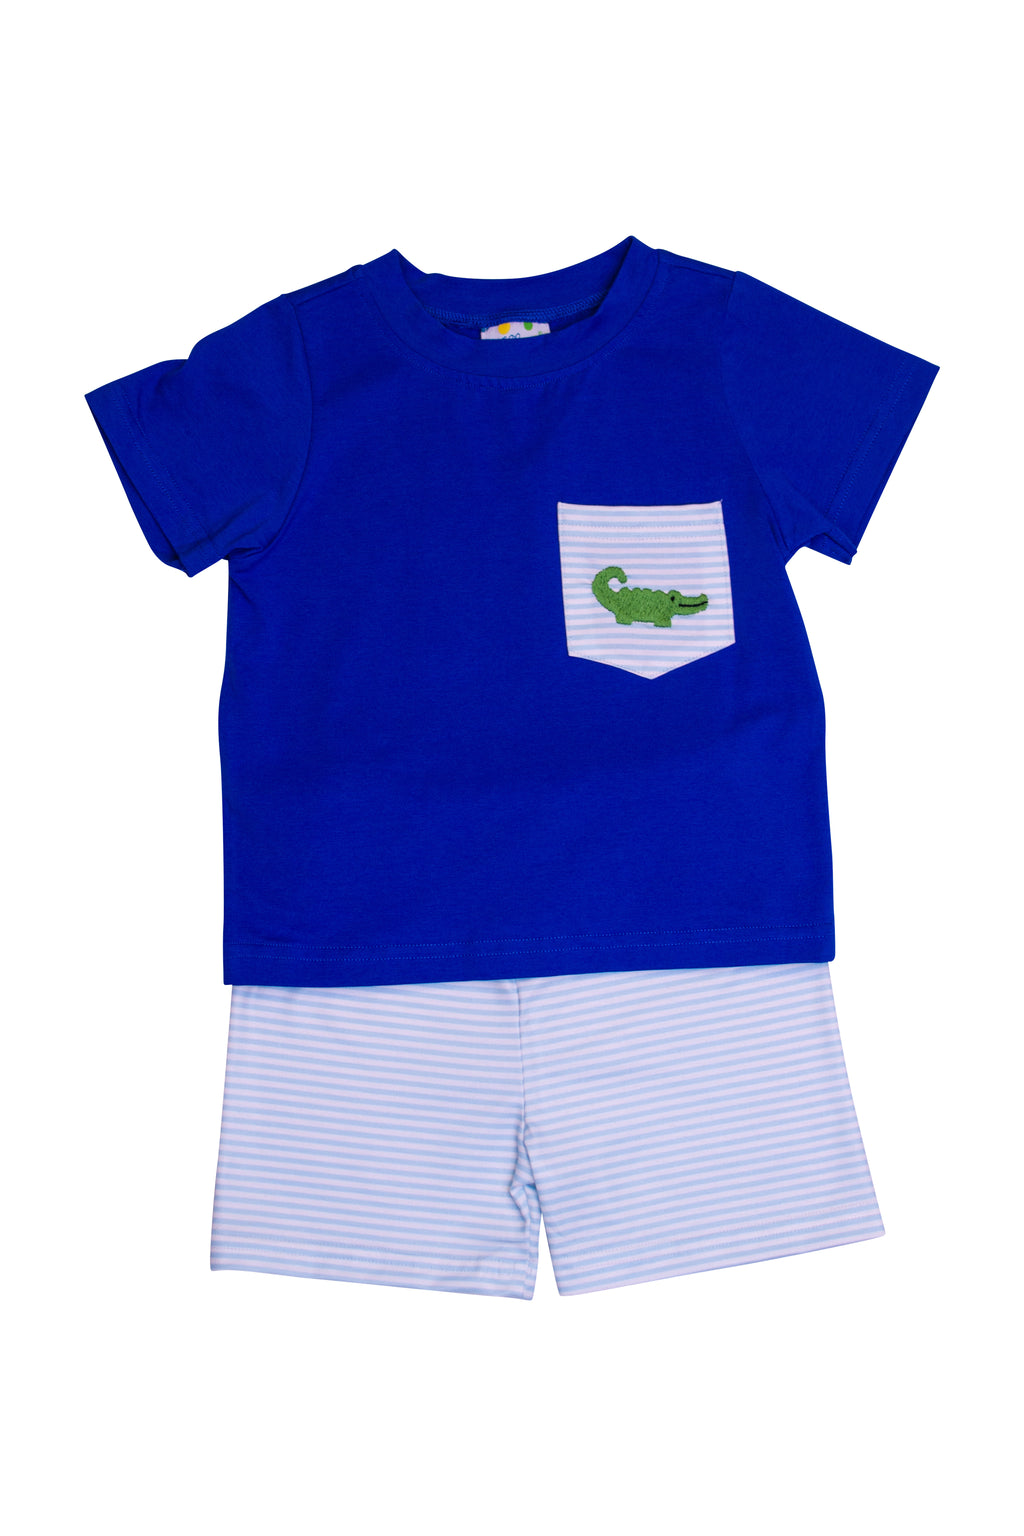 Boys Knit Embroidered Alligator Shorts Set